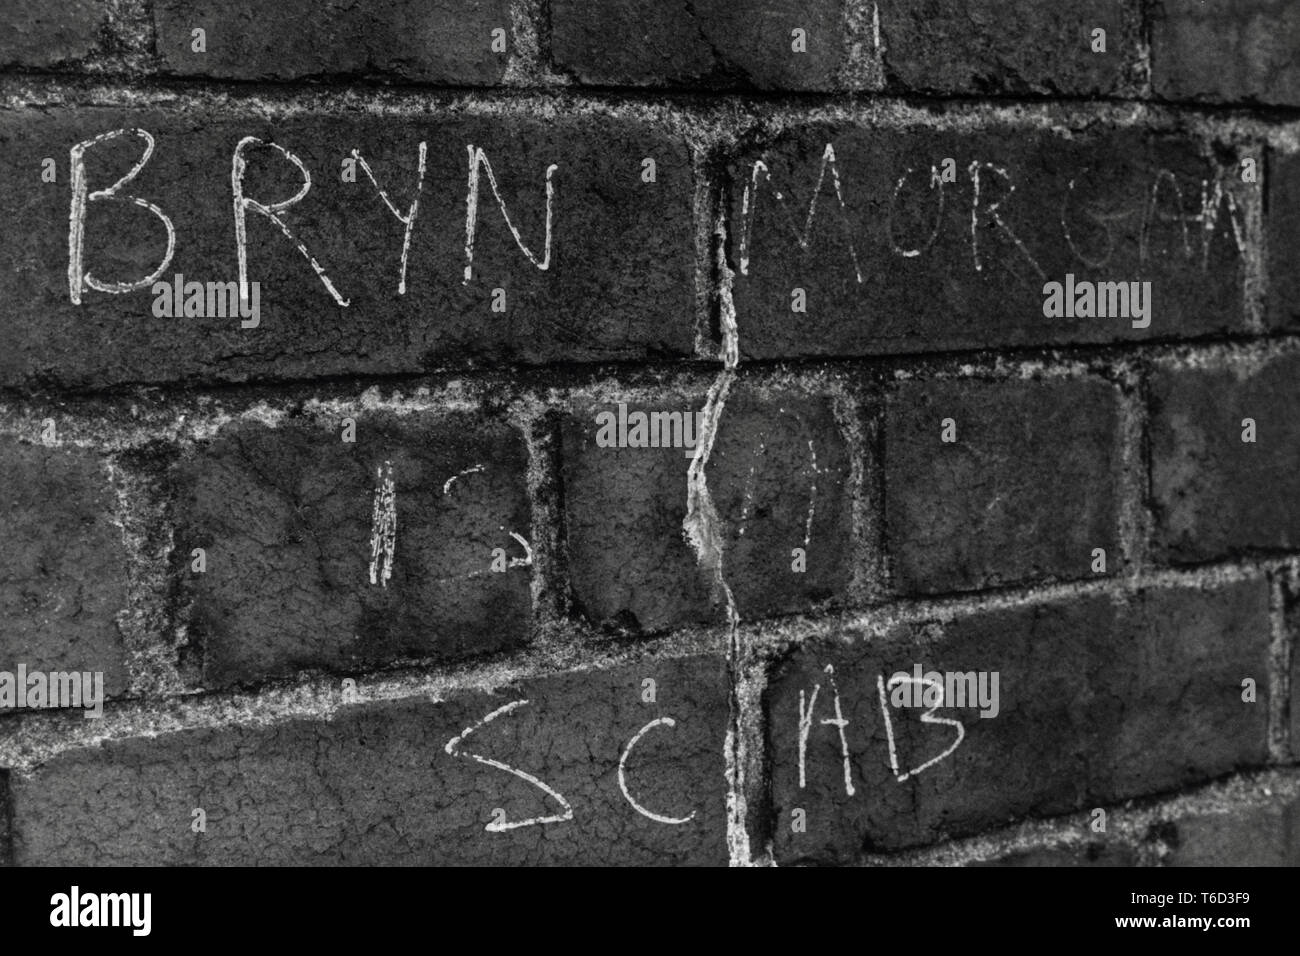 Graffiti on wall in South Wales during 1984 -85 miners strike BRYN MORGAN IS A SCAB - Stock Image